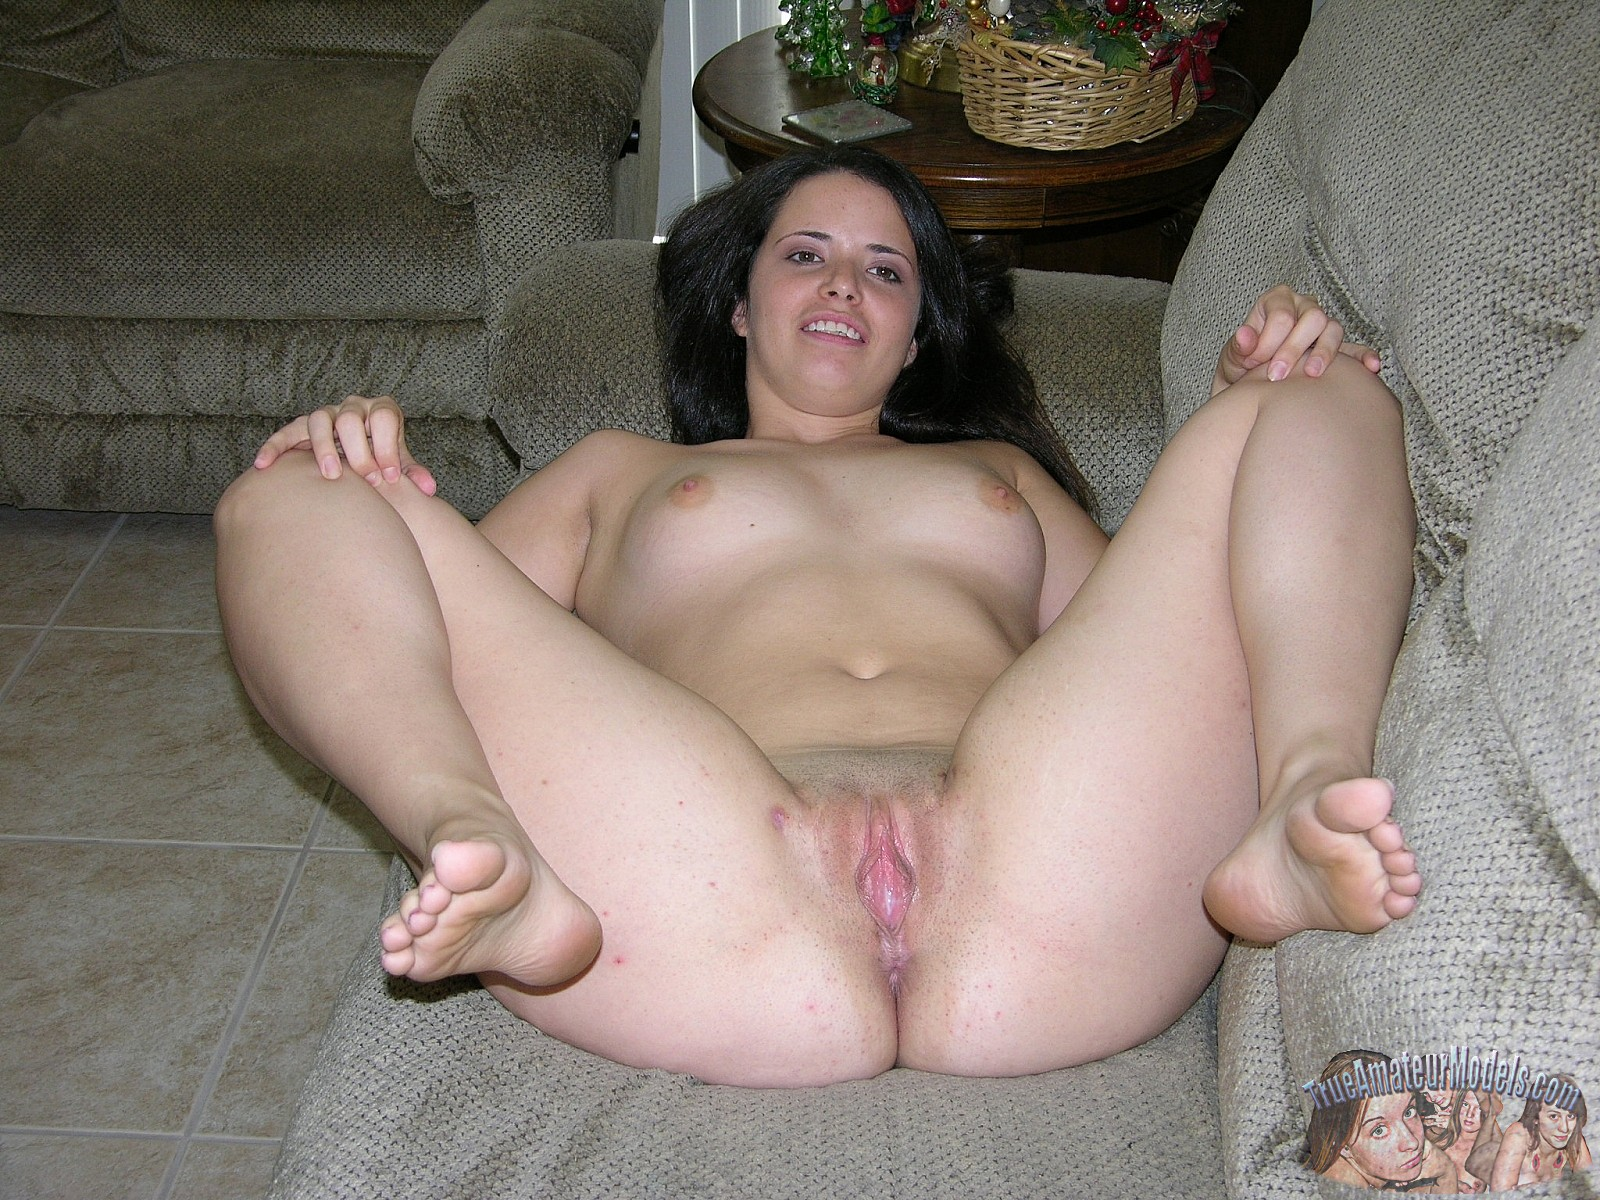 amatuer little young nudes